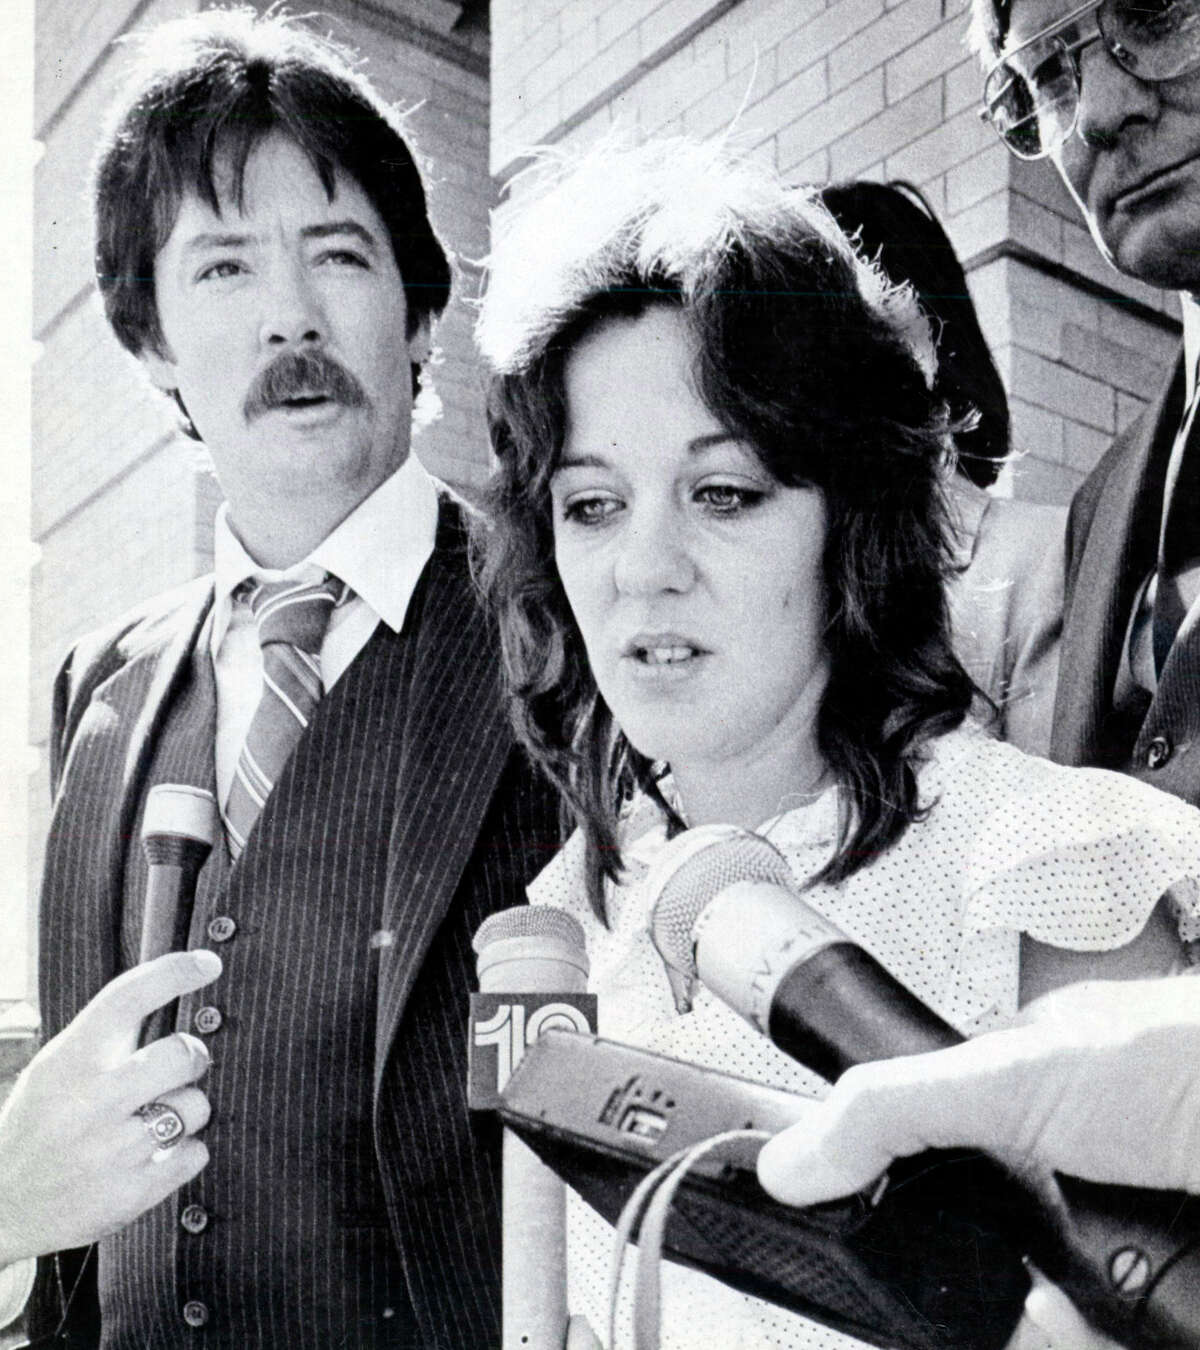 2/26/1984 Georgetown, Texas: Following the sentencing of nurse Genene Jones to 99 yearss for the murder of 15 month old Chelsea Ann McClellan, the parents of Chelsea met with reporters. Reid and Petti McClellan said that the end of the trial brought a great sense of relief. Jones -- who worked in the pediatric intensive care unit of University Hospital, formerly Medical Center Hospital, from 1981 to 1982 -- was also convicted in a separate case in which the child survived. She's a suspect in 46 other cases that have not seen a court date.